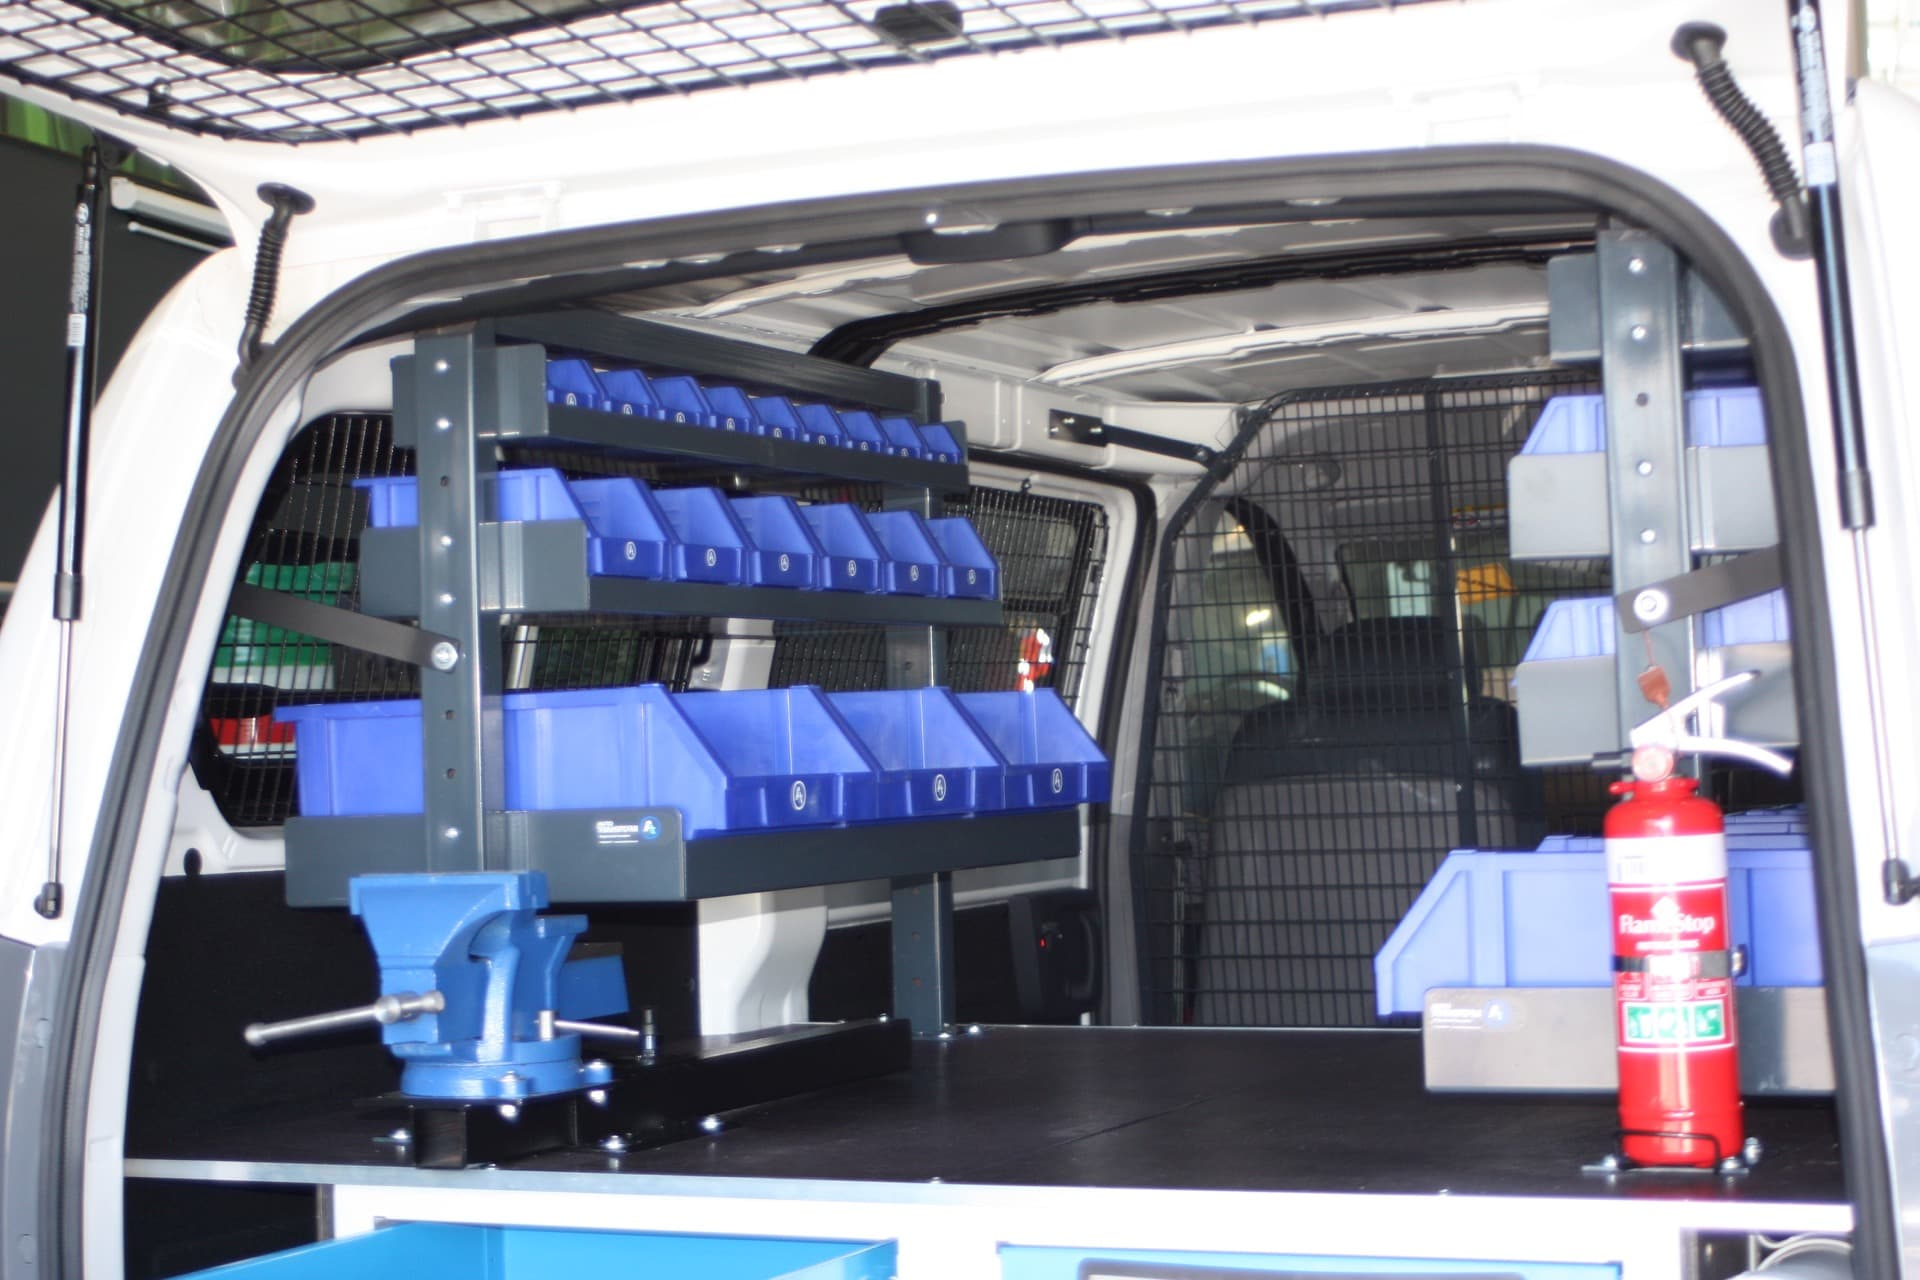 Van fitout with tool drawer storage solutions